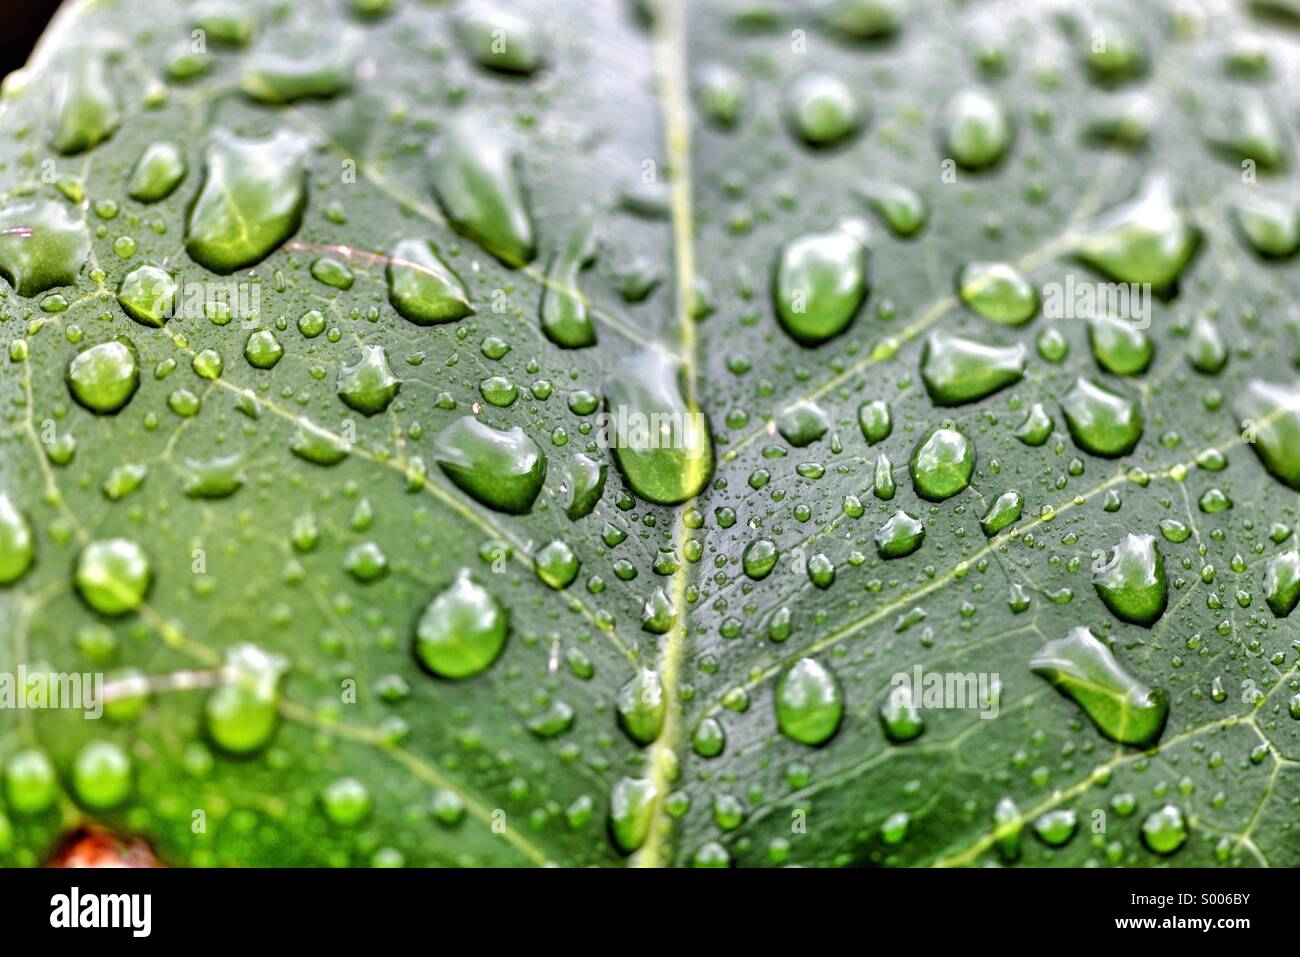 Raindrops on leaf - Stock Image